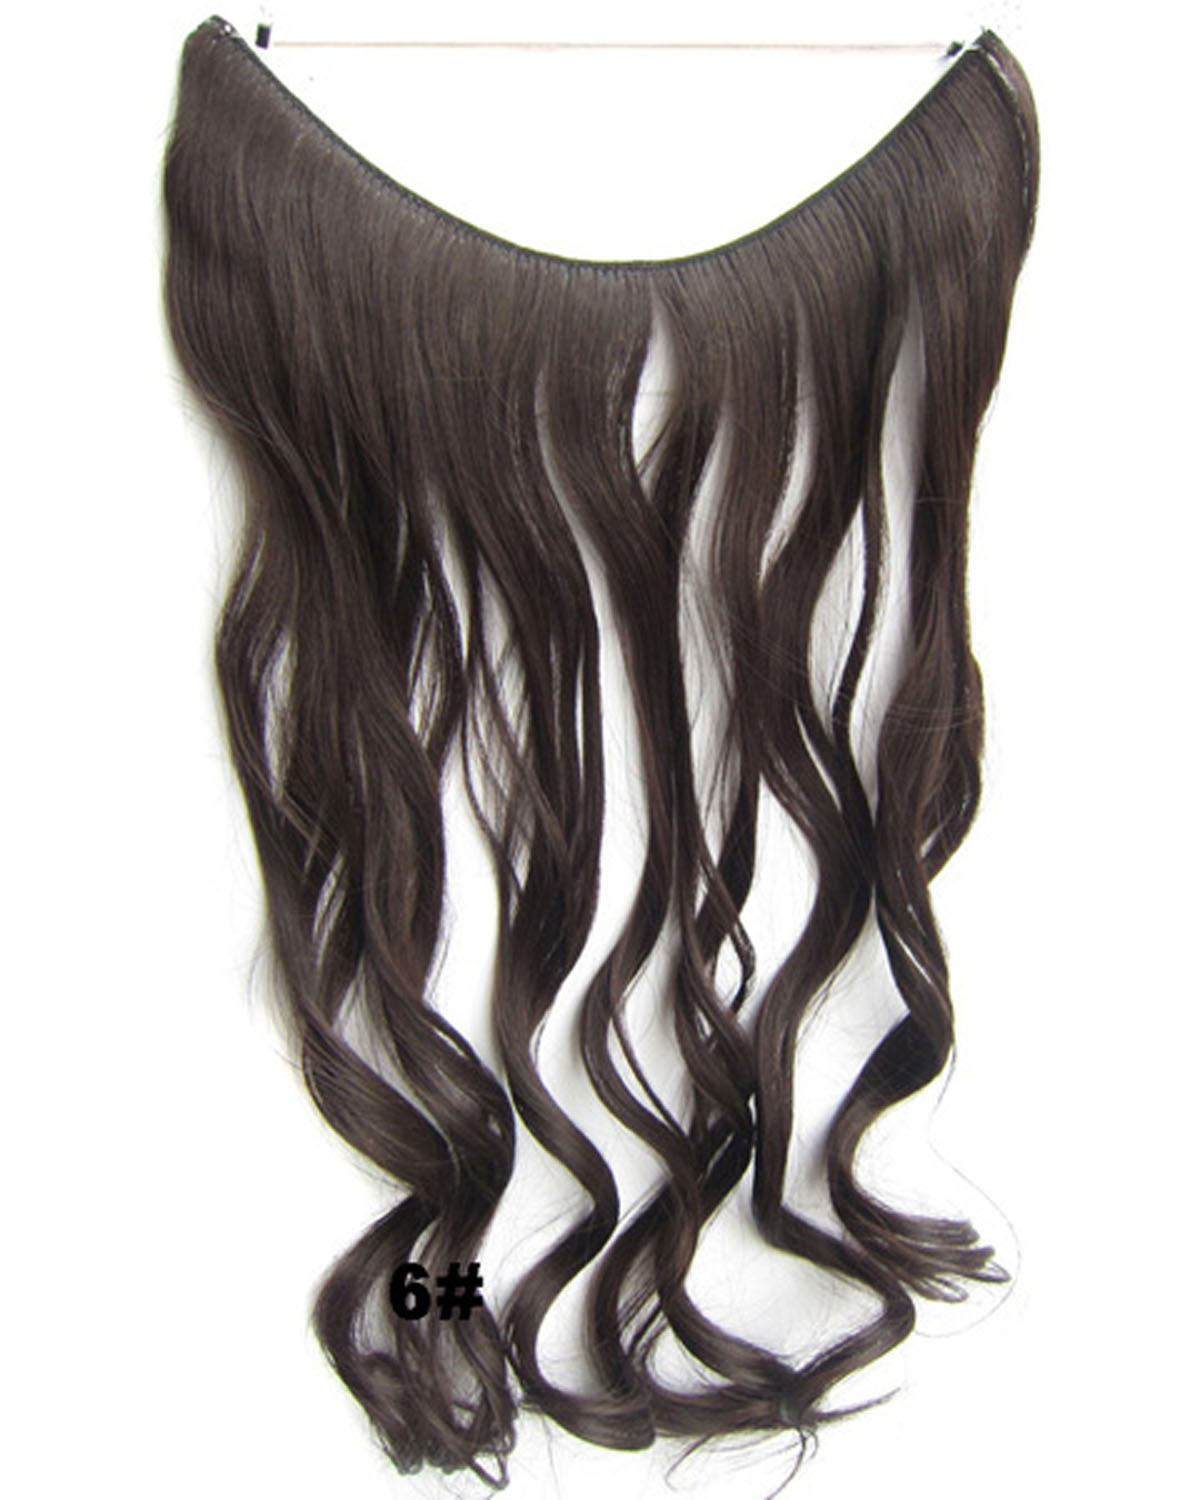 22 Inch Elegant Curly and Long One Piece Miracle Wire Flip in Synthetic Hair Extension 6#